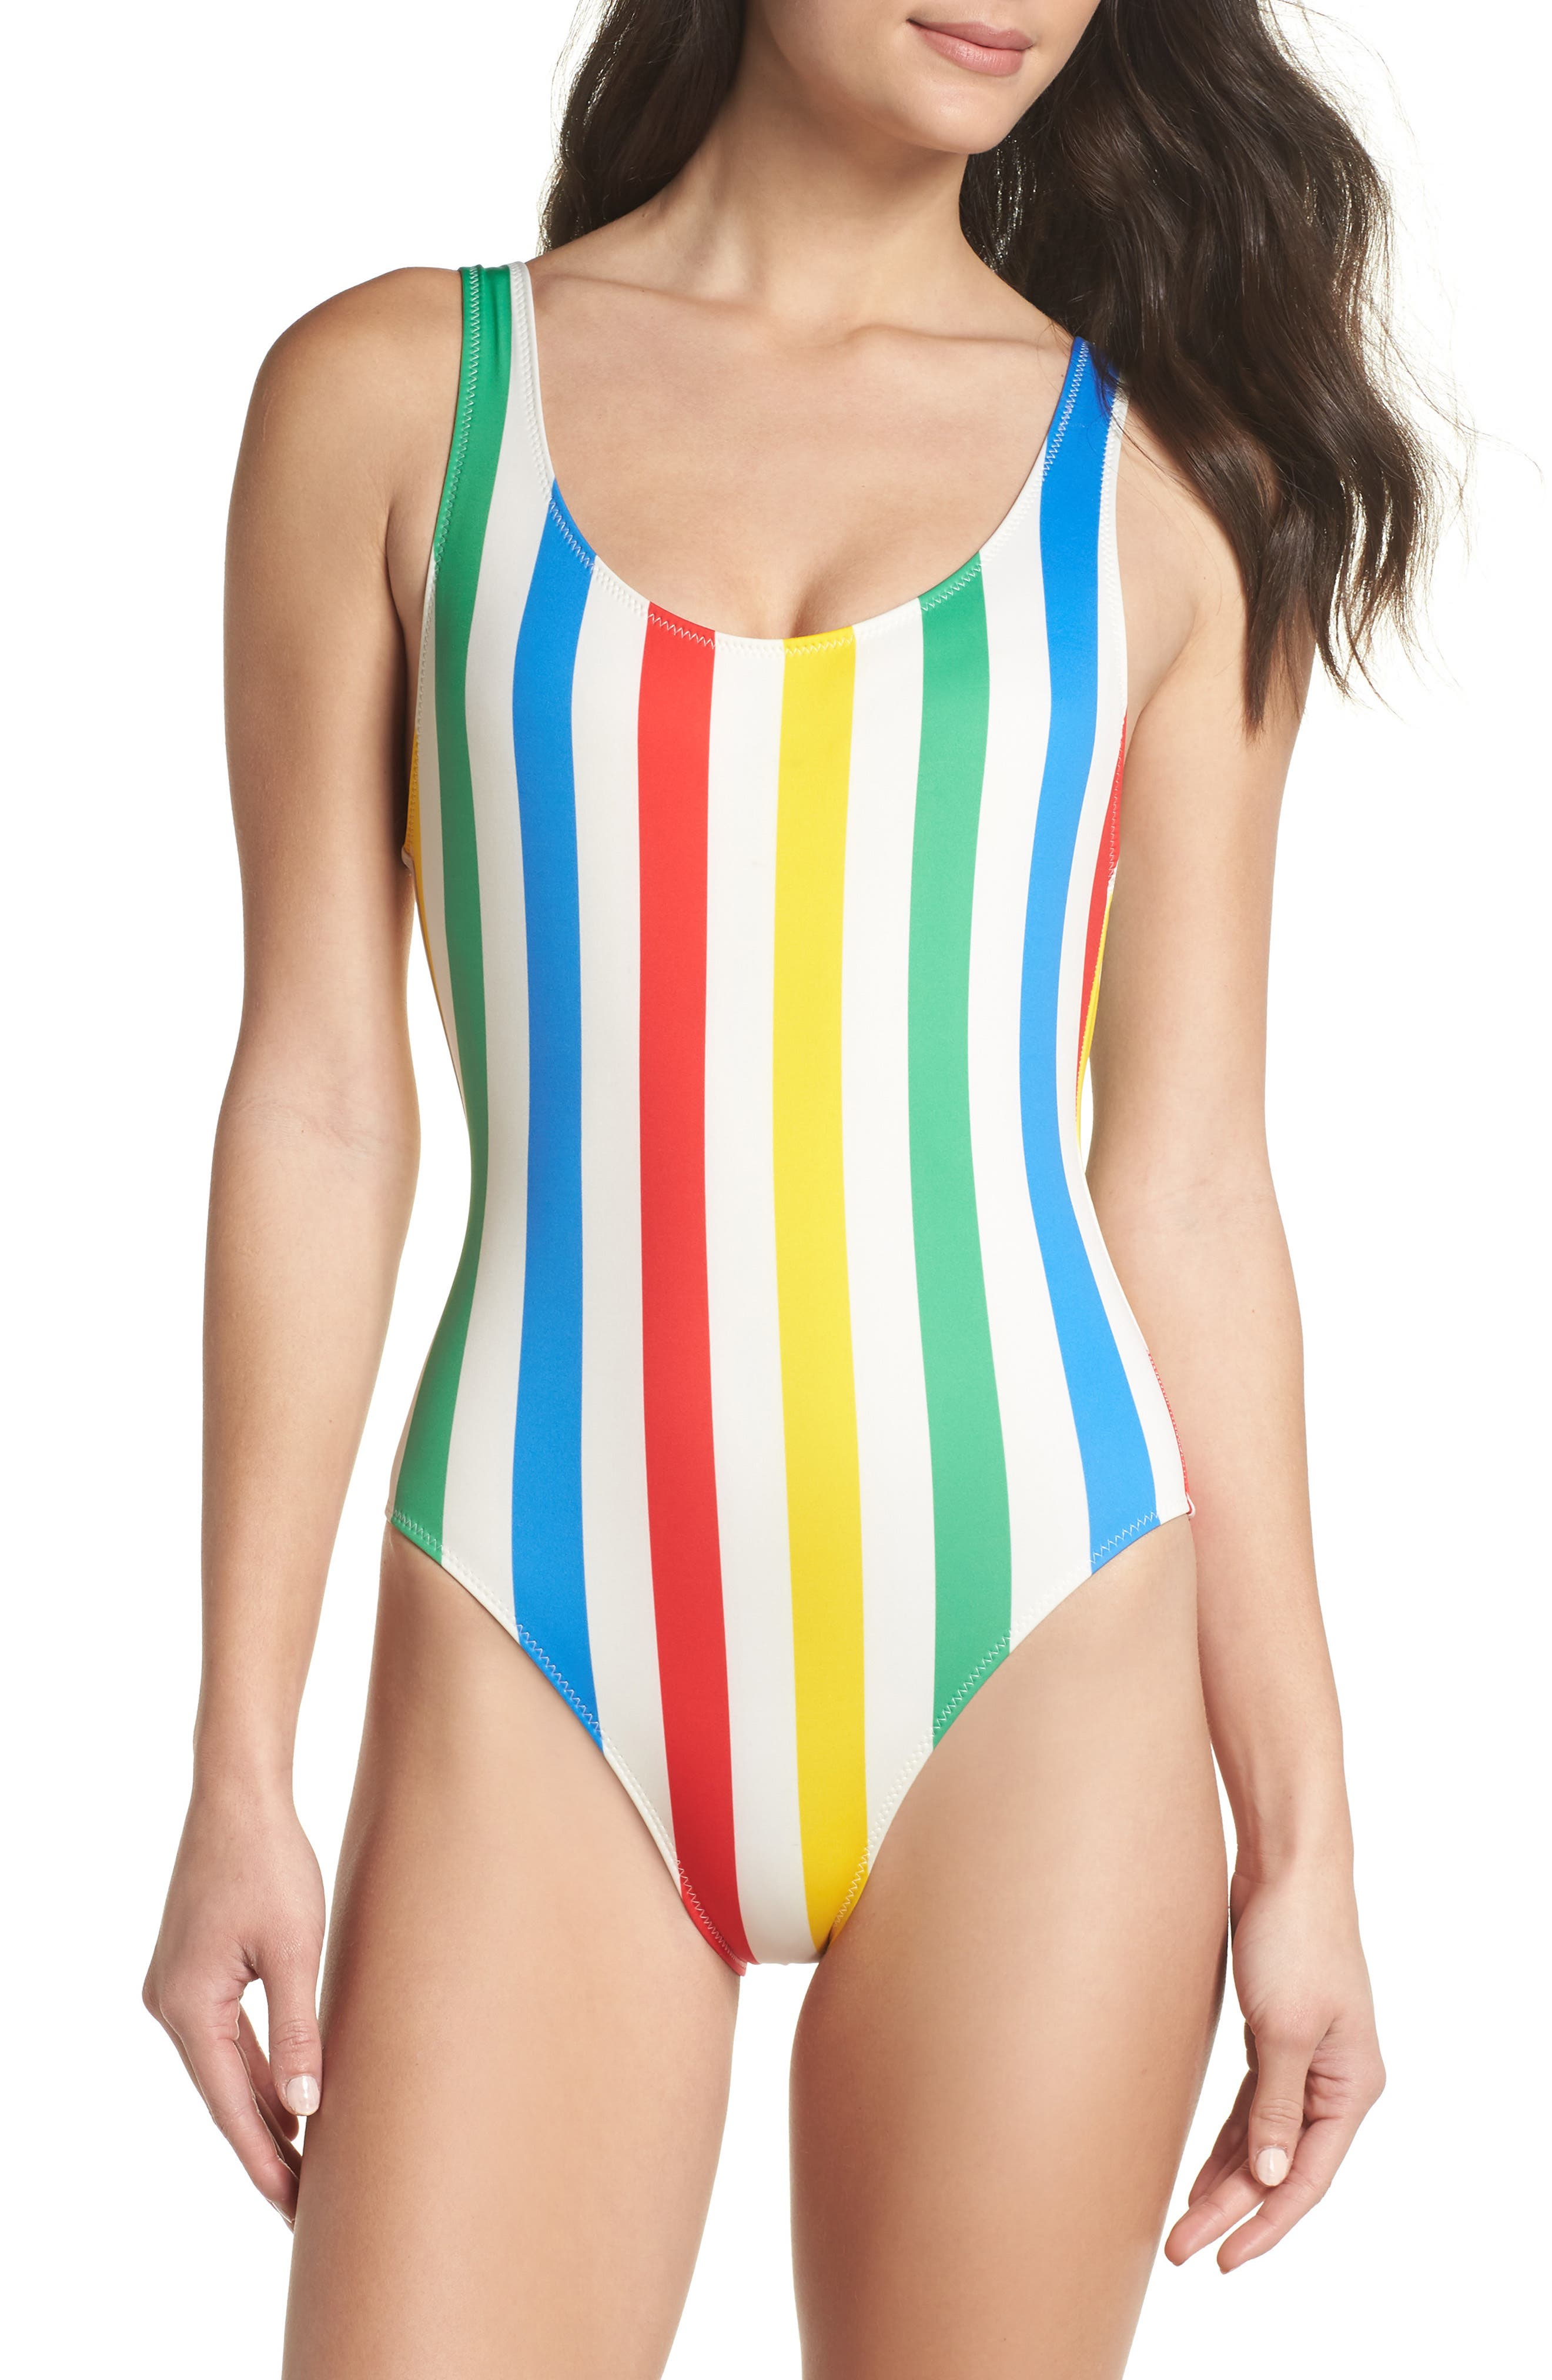 Anne Marie Open Back One-Piece Swimsuit,                             Main thumbnail 1, color,                             PRIMARY STRIPE